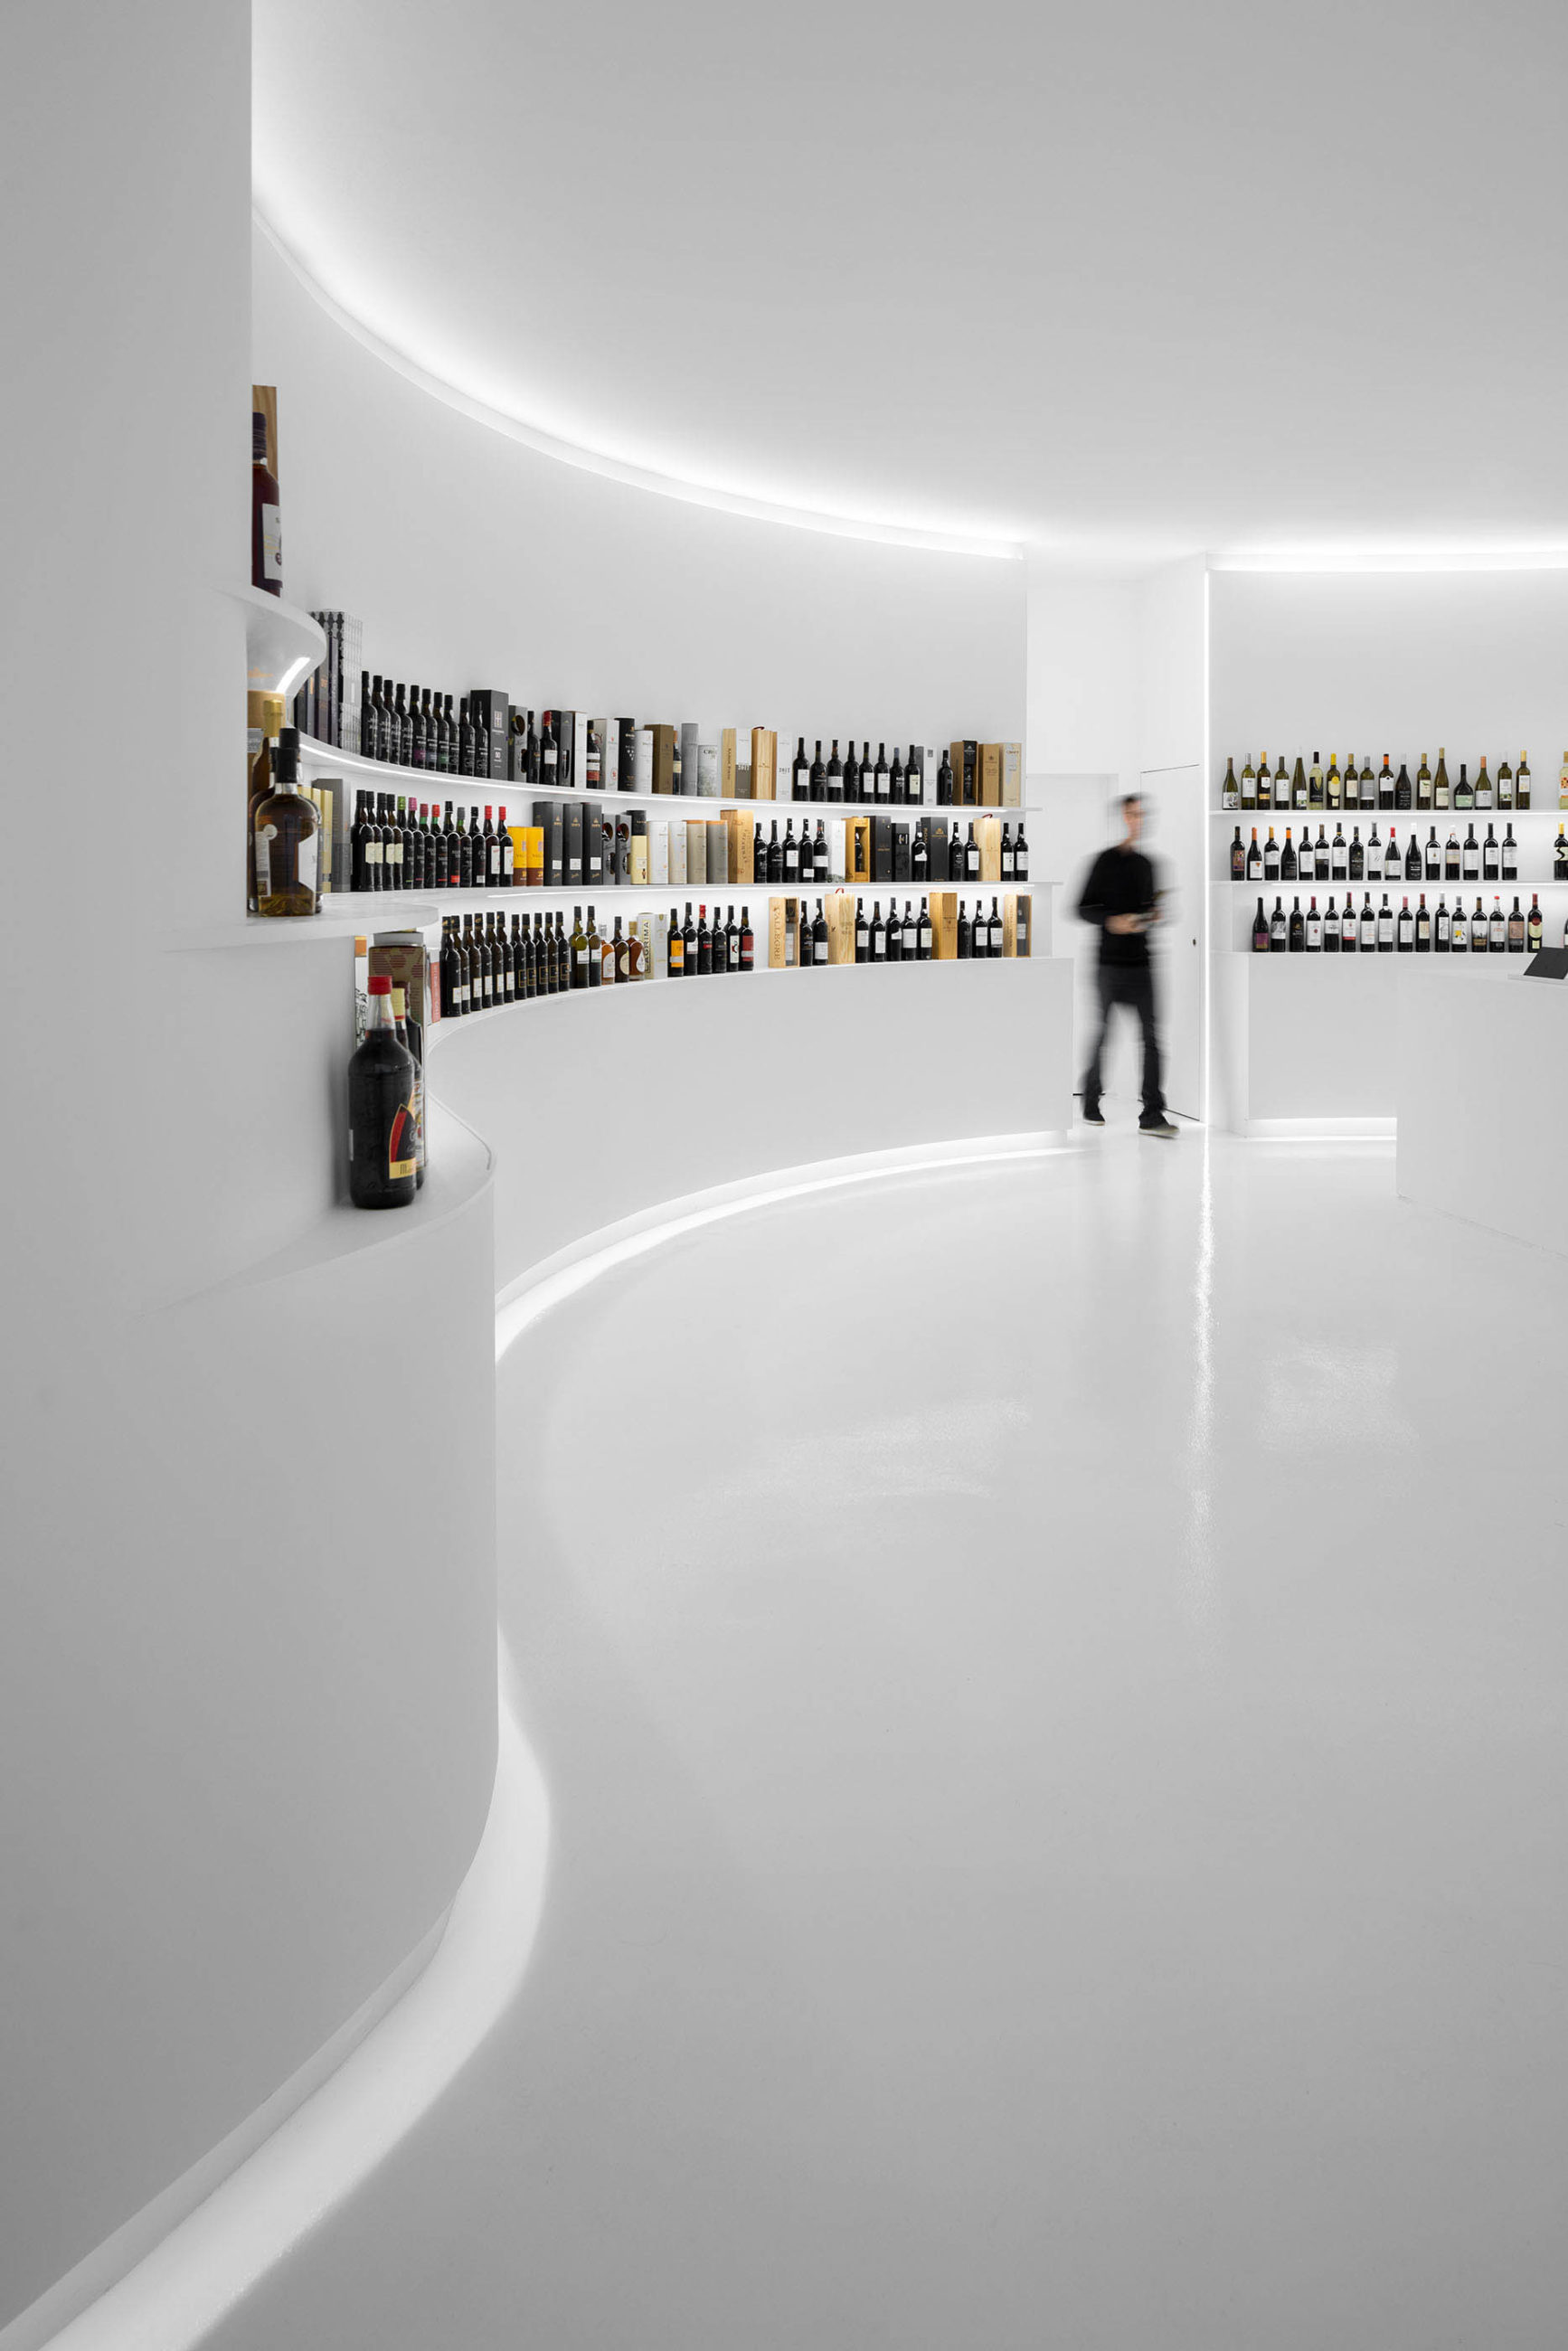 Portugal Vineyards Concept Store do atelier Porto Architects e fotografia arquitetura de ivo tavares studio